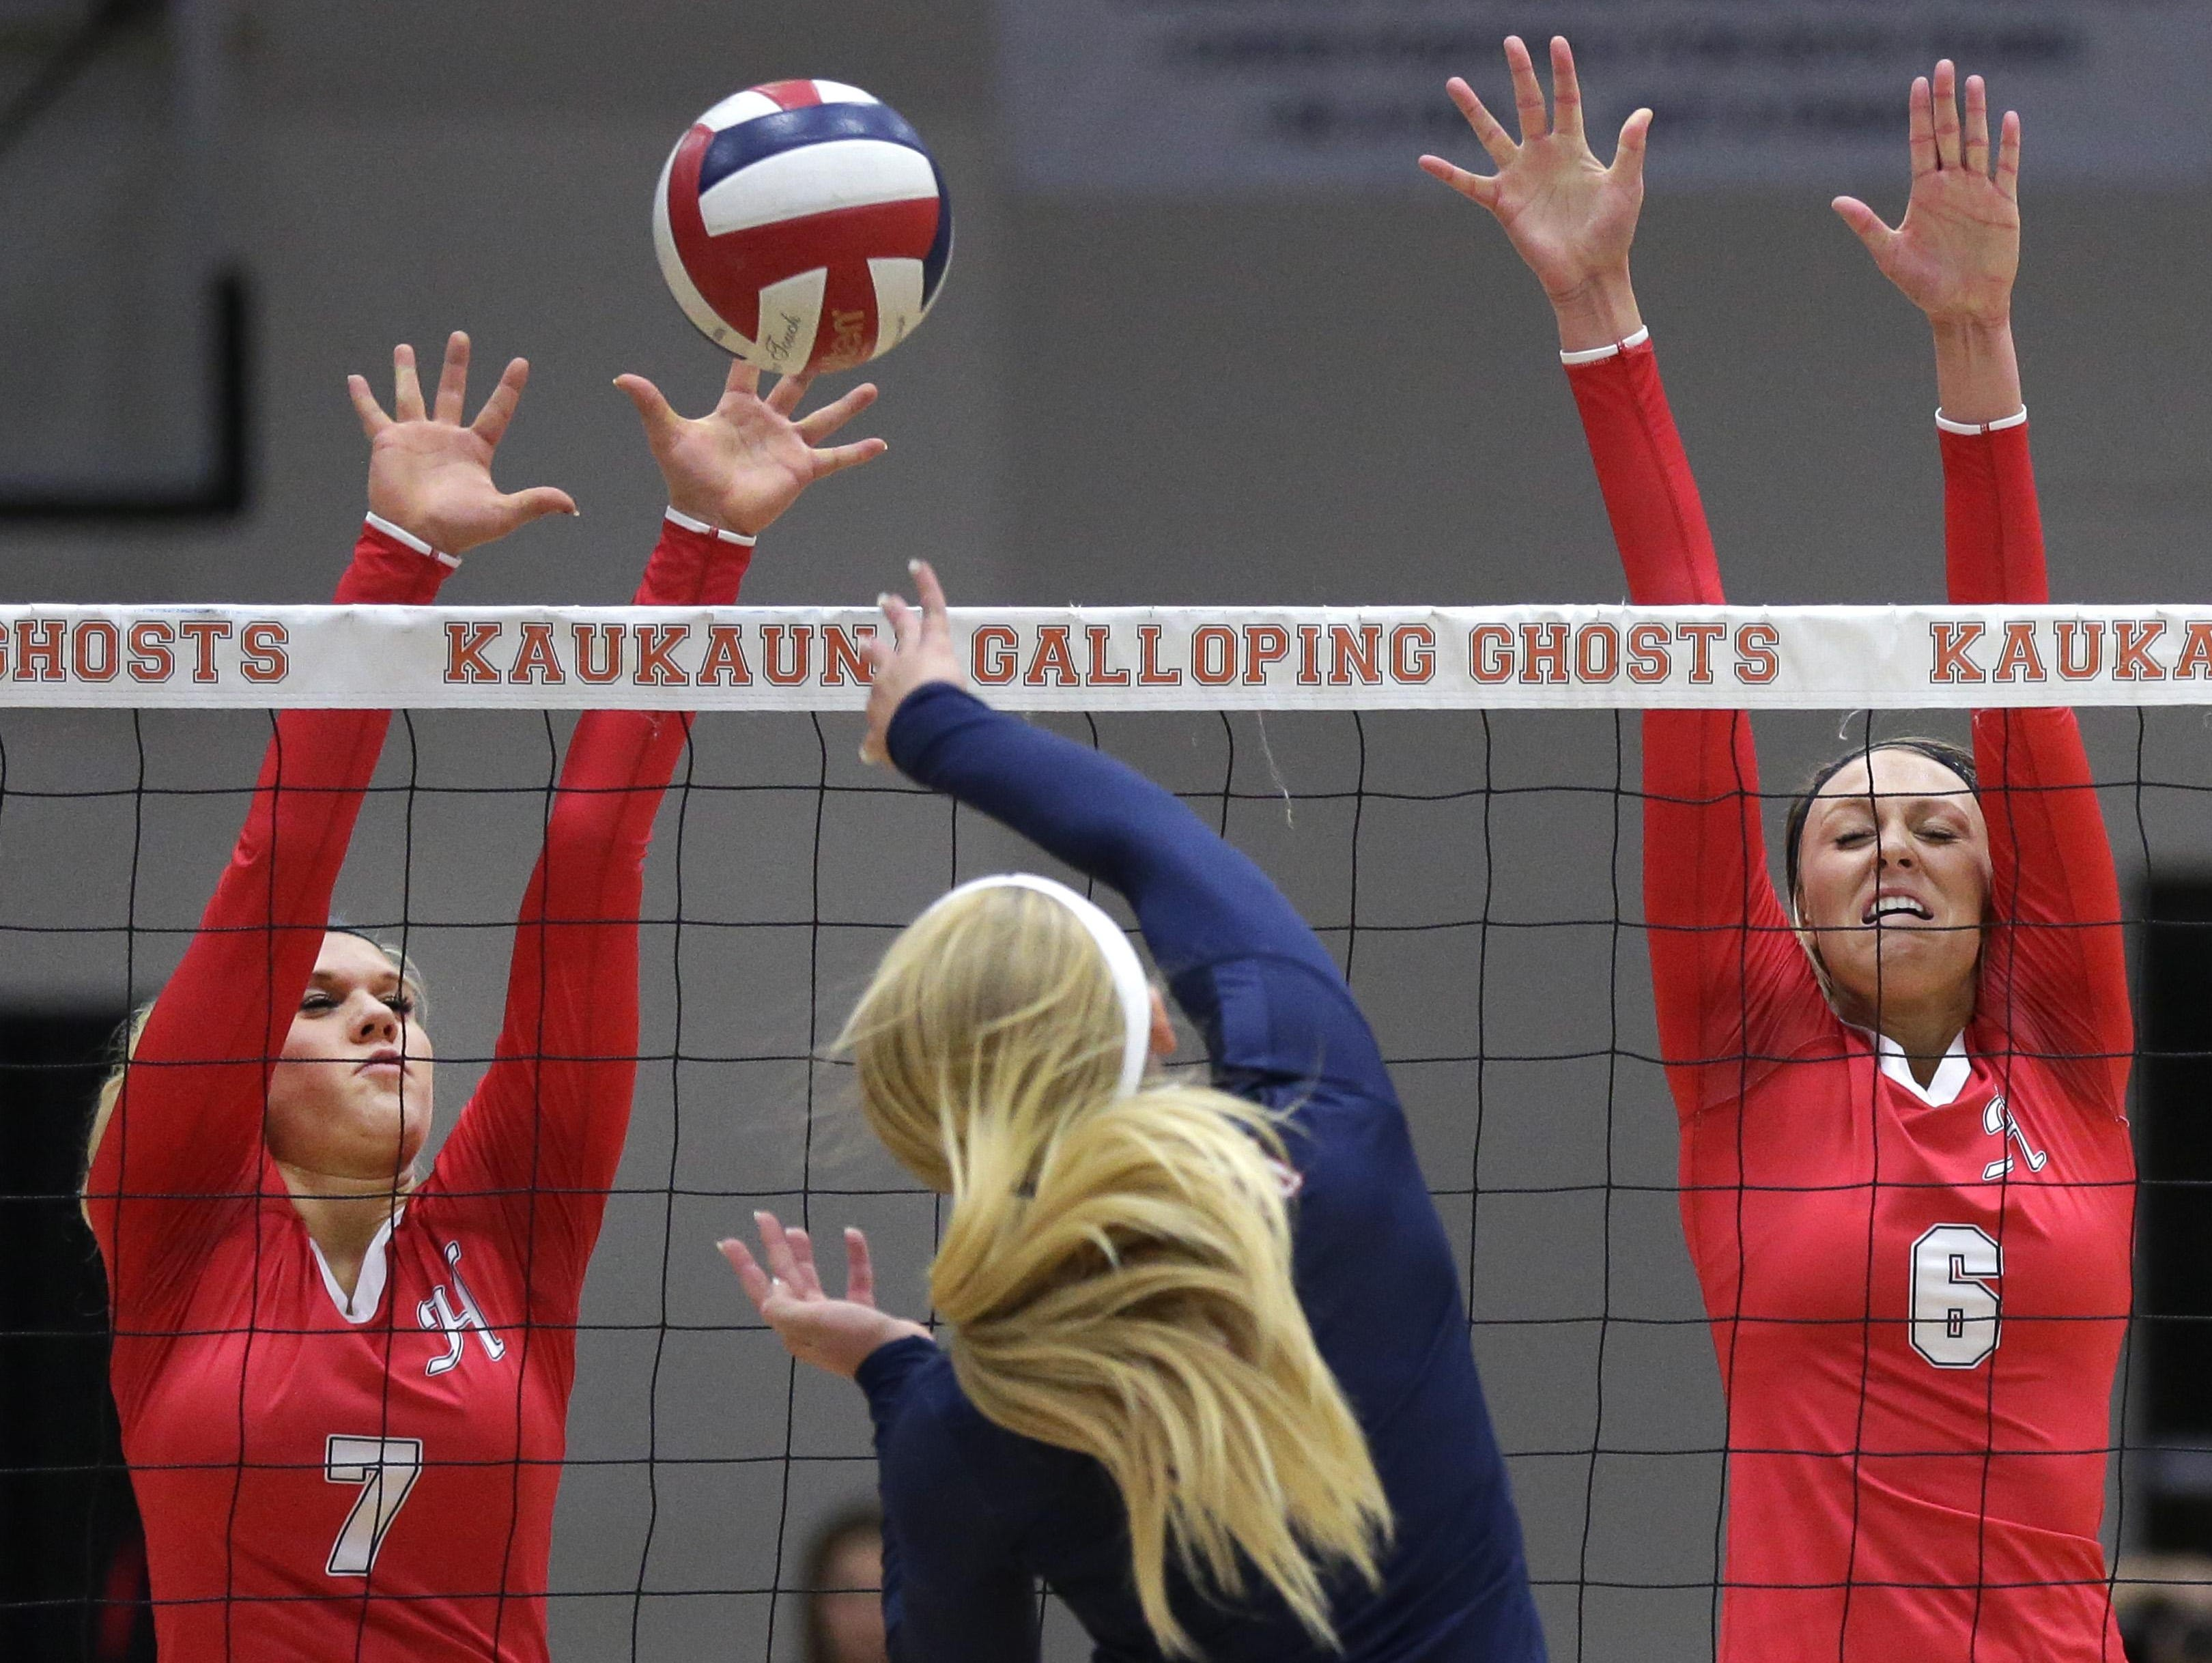 Hortonville's Mandy Behm (left) and Madi Walter (right) try to block a hit by Appleton East's Tricia Dailey during a WIAA Division 1 sectional semifinal Thursday in Kaukauna. To see more photos and video from the match, go to postcrescent.com.